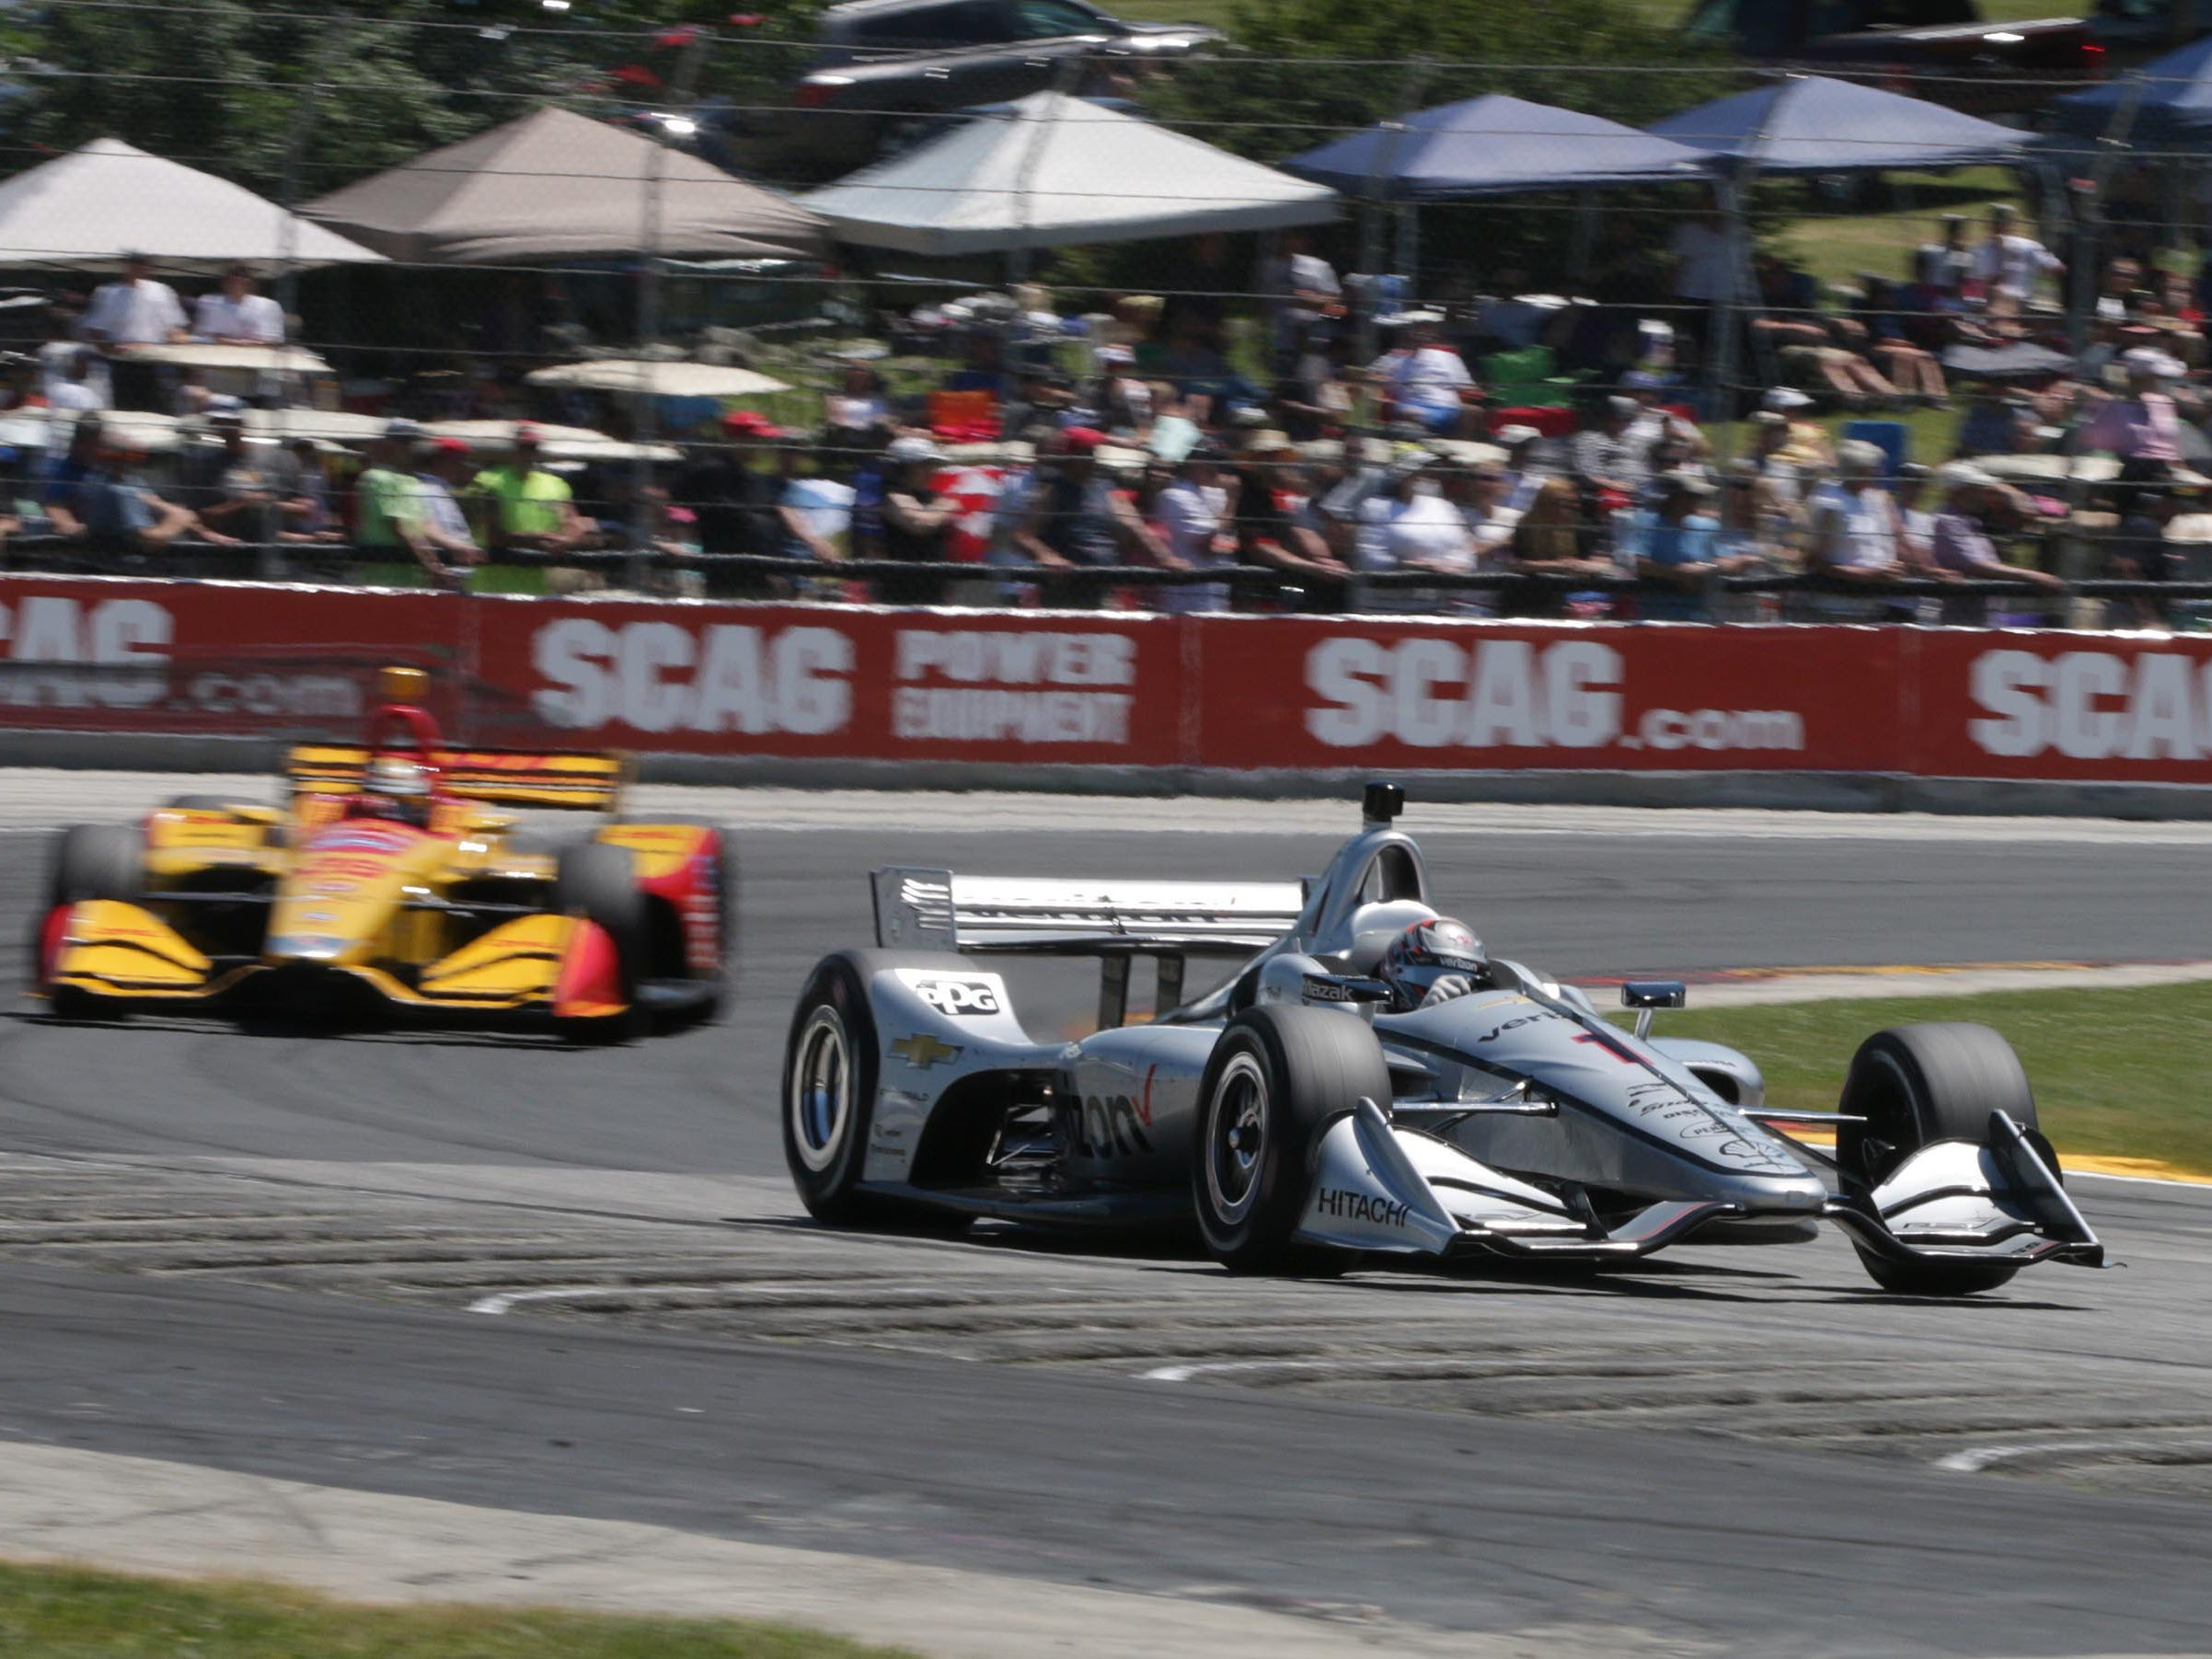 Josef Newgarden (1) leads Ryan Hunter-Reay (28) around turn 5, Sunday, June 24, 2018, during the Kohler Grand Prix at Road America in Elkhart Lake, Wis.